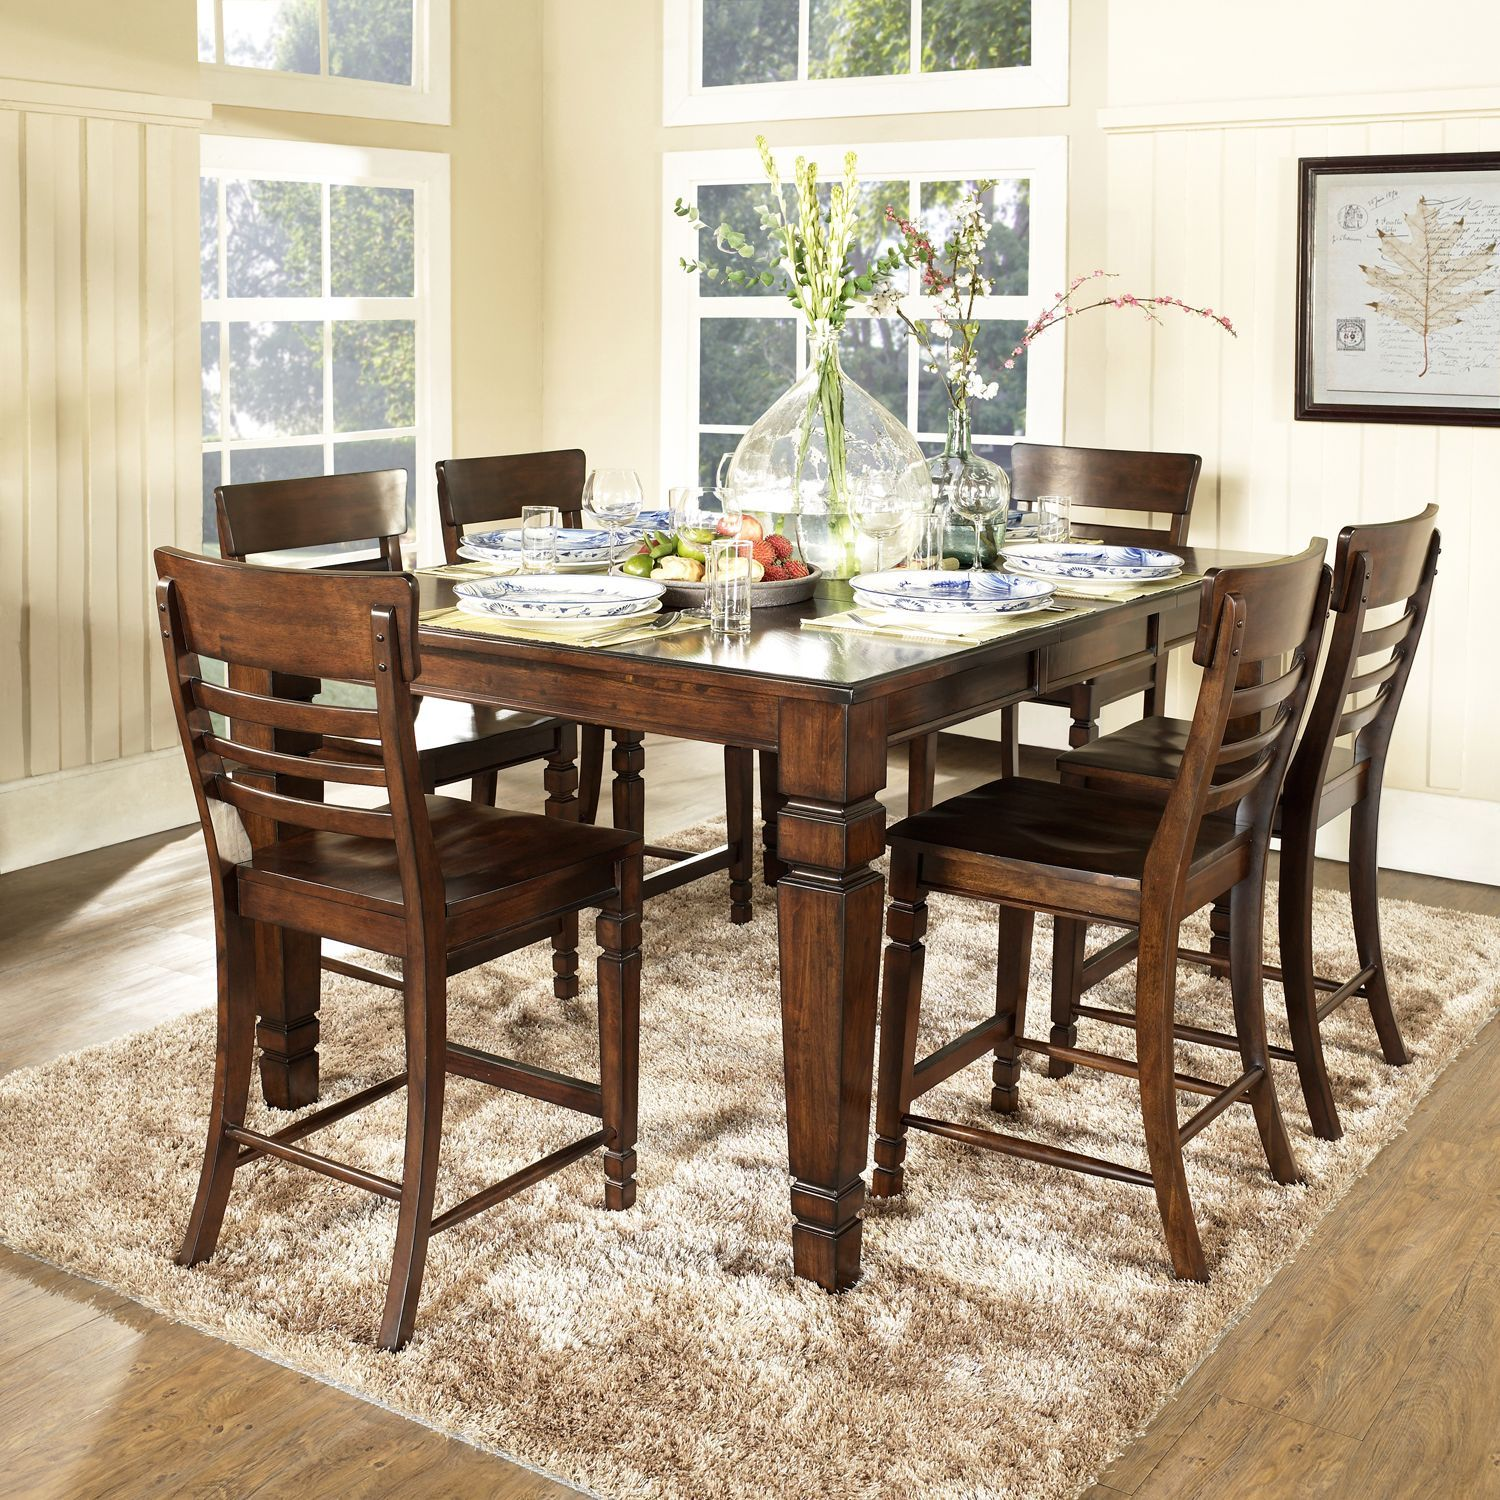 Our New Dining Room Set Under 700 From Samsclub Of All Places